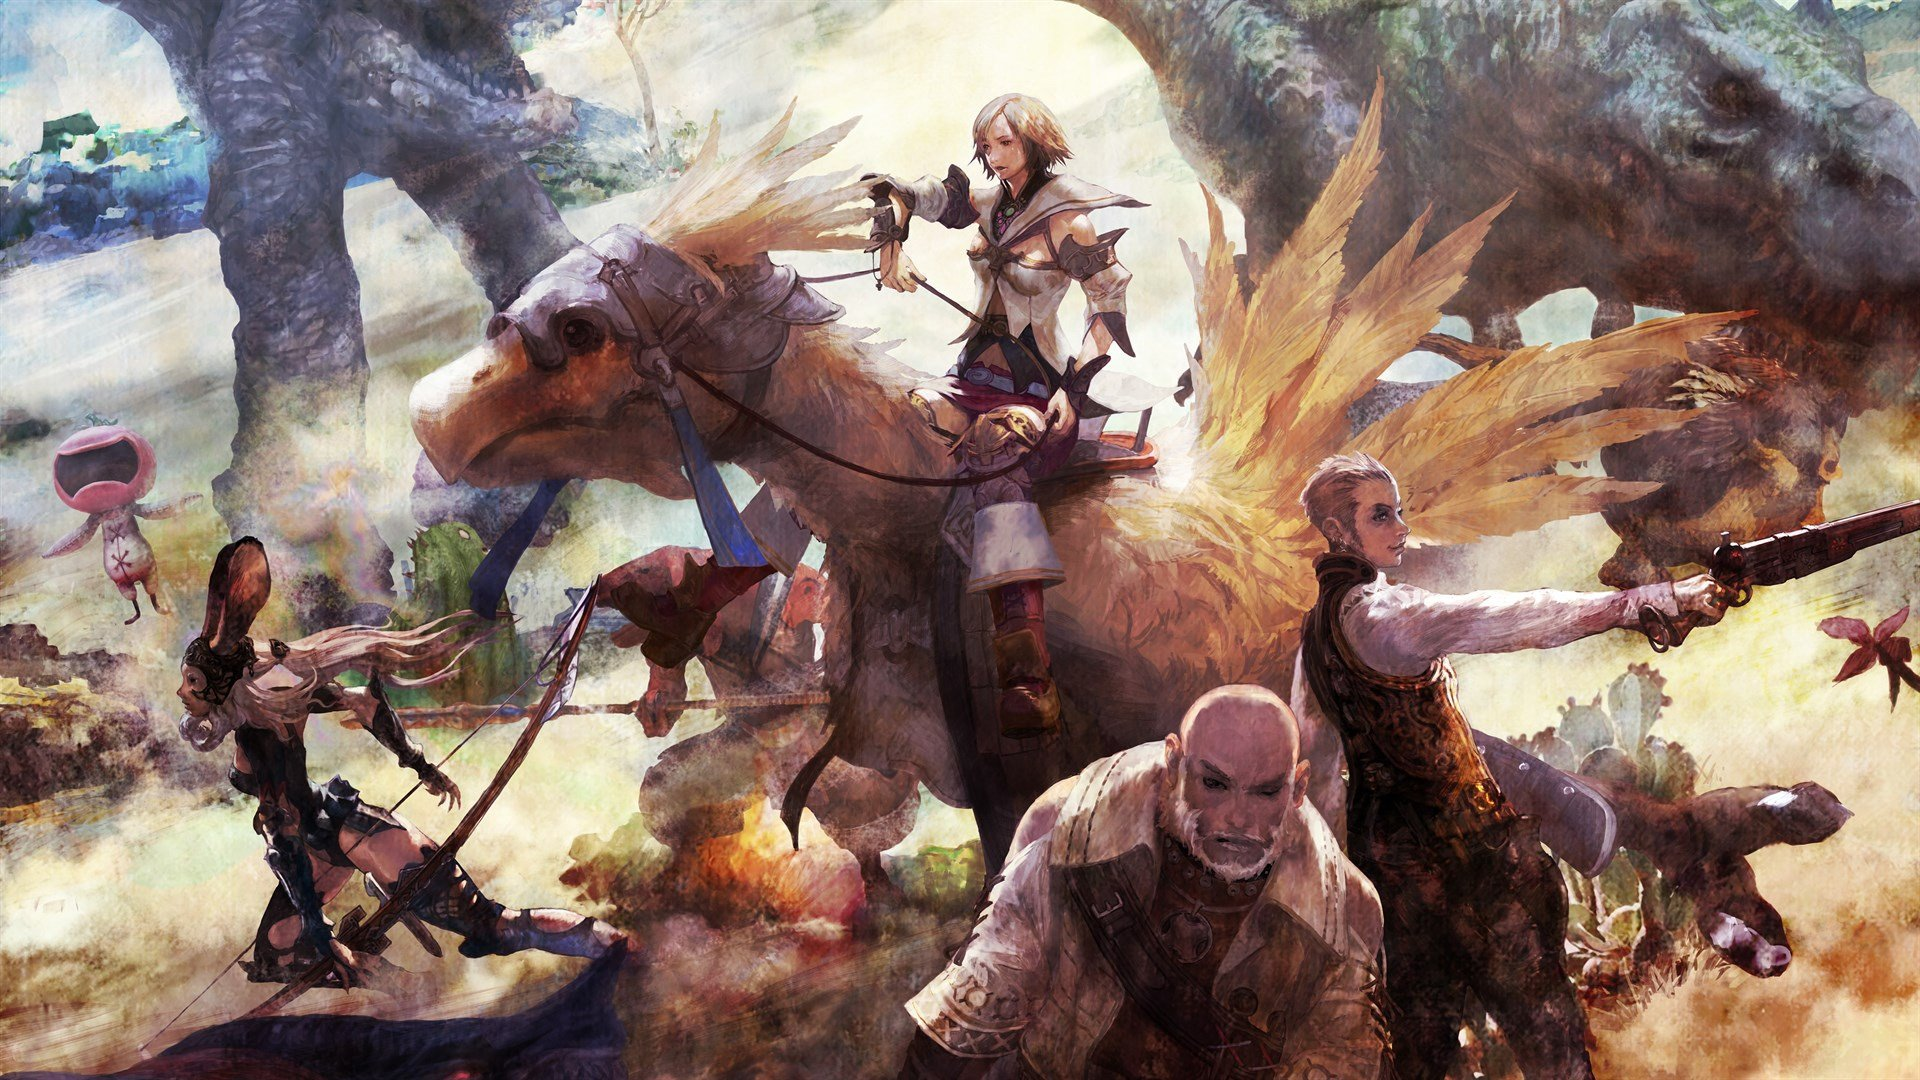 Final Fantasy XII got a helpful update on PS4 and PC screenshot